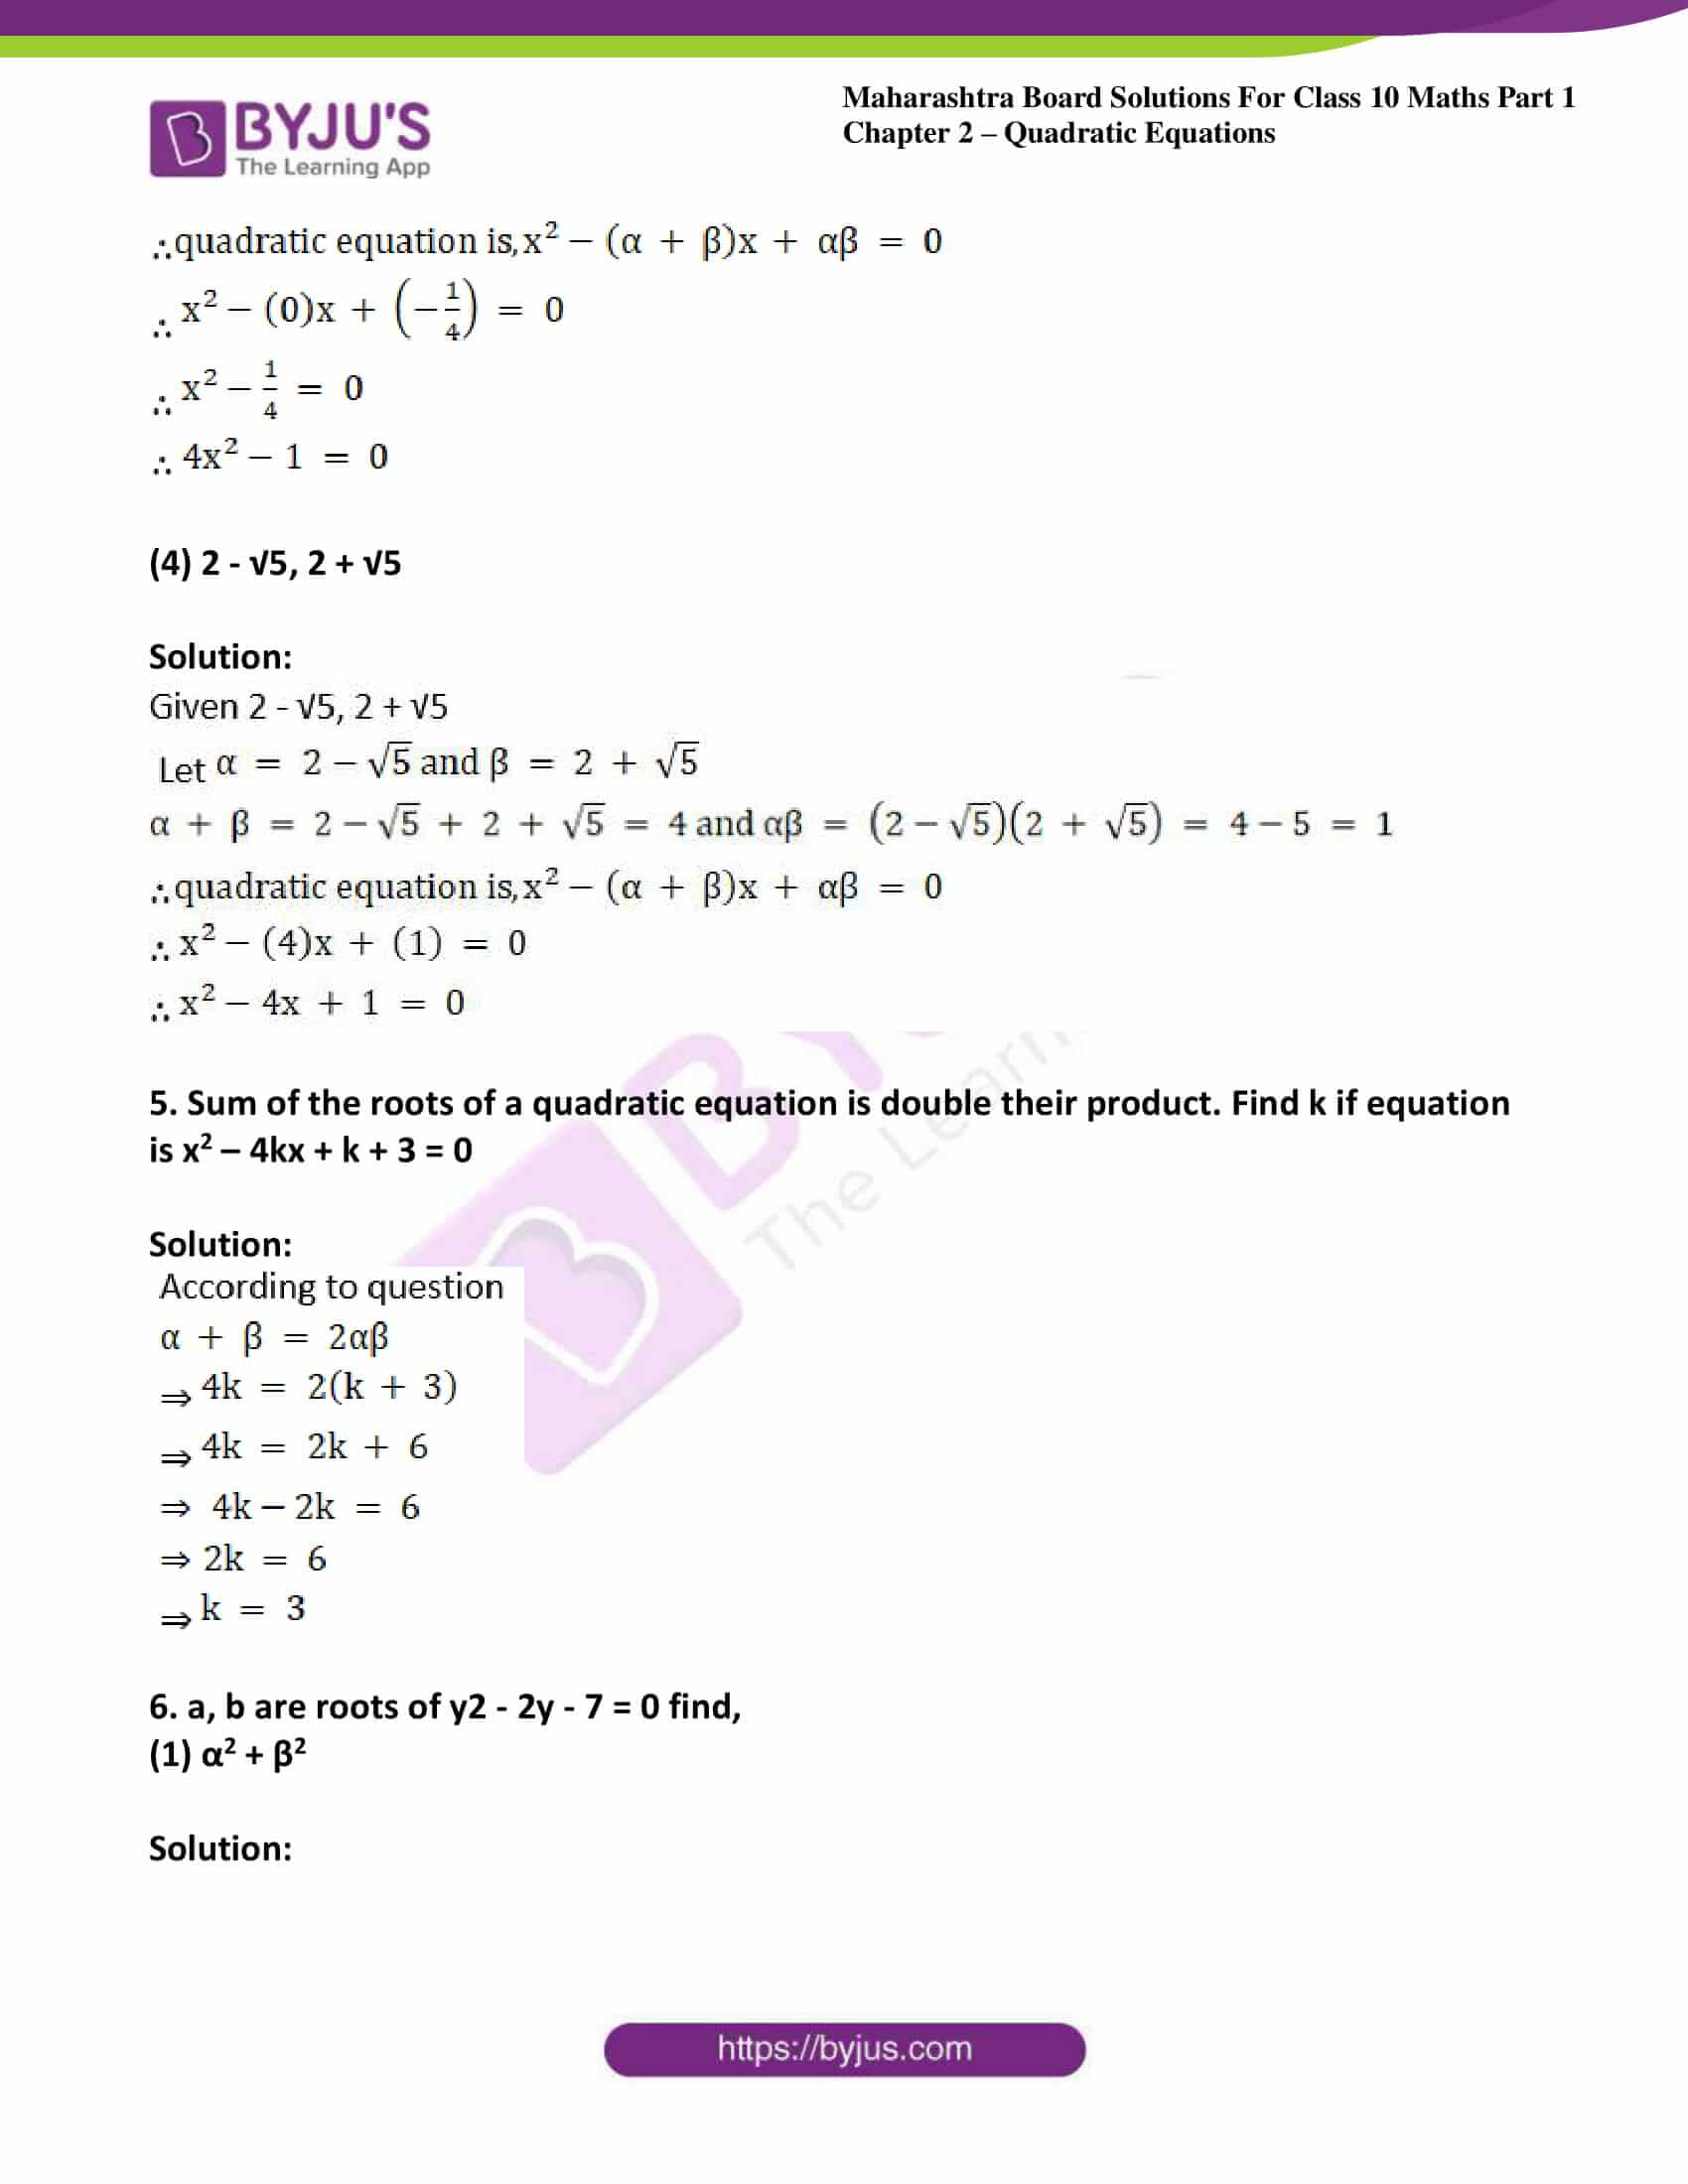 msbshse solutions class 10 maths part 1 chapter 2 26